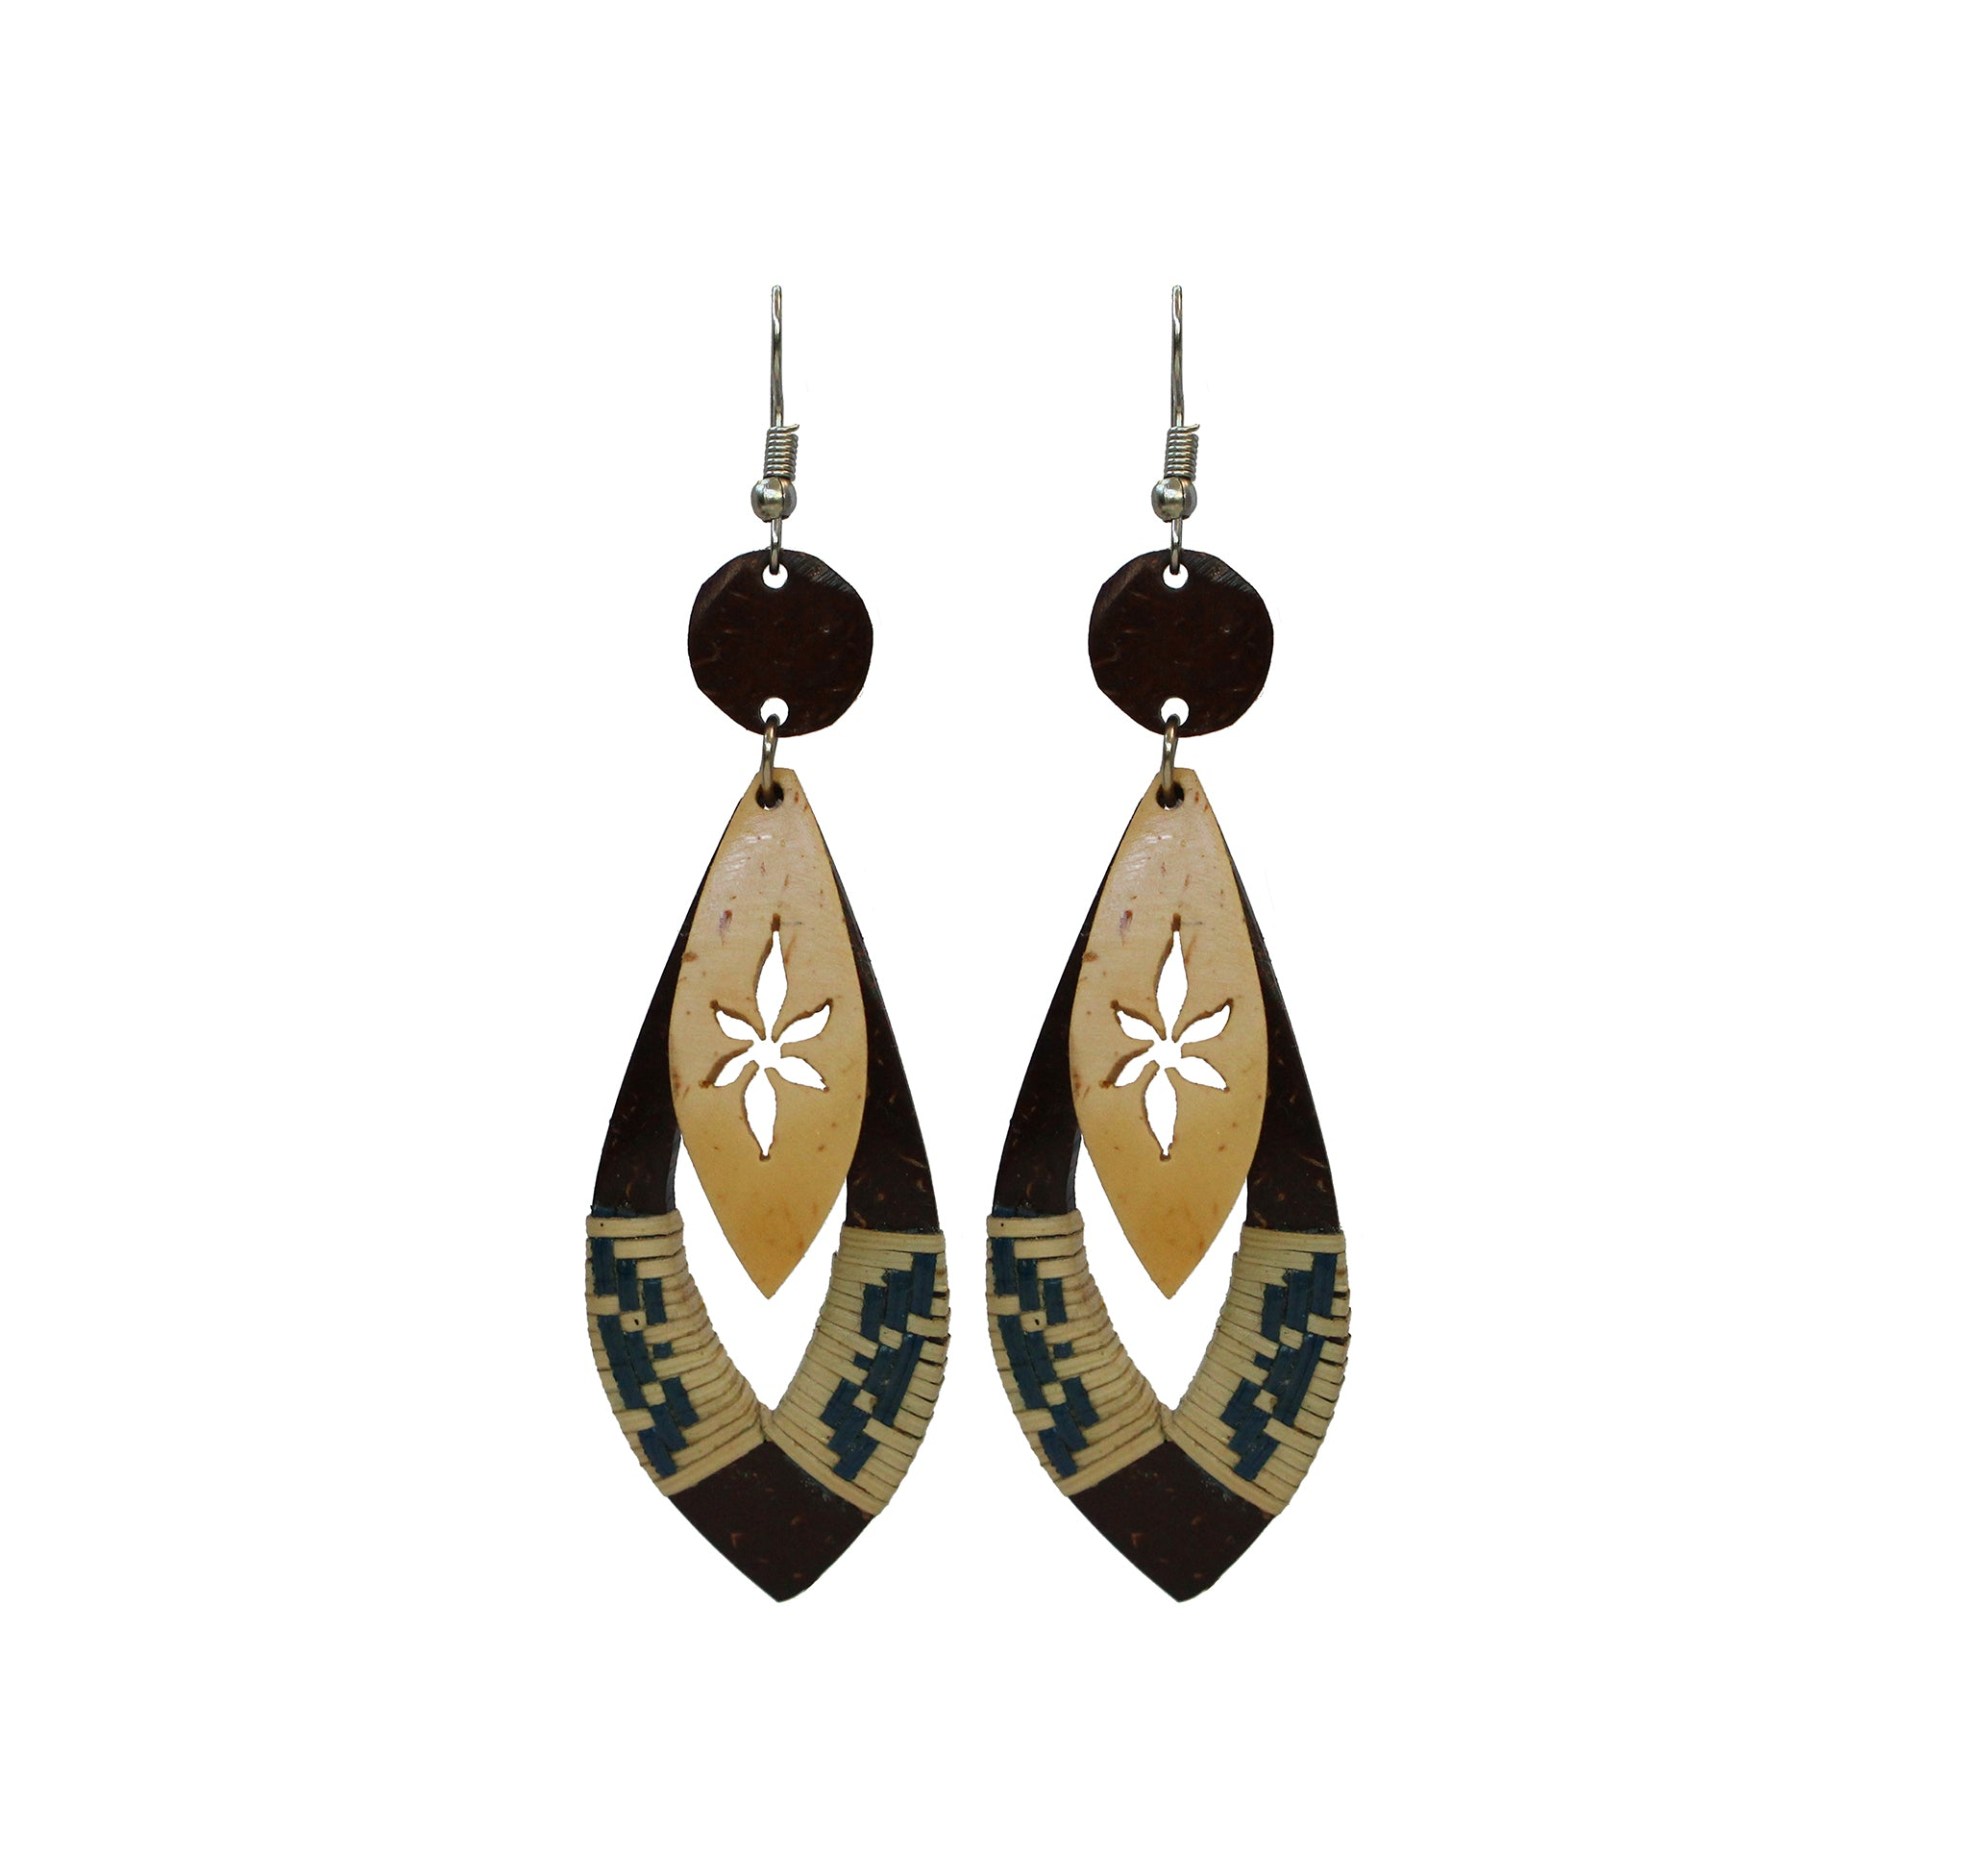 Coconut Earrings - Dangle Woven Drop